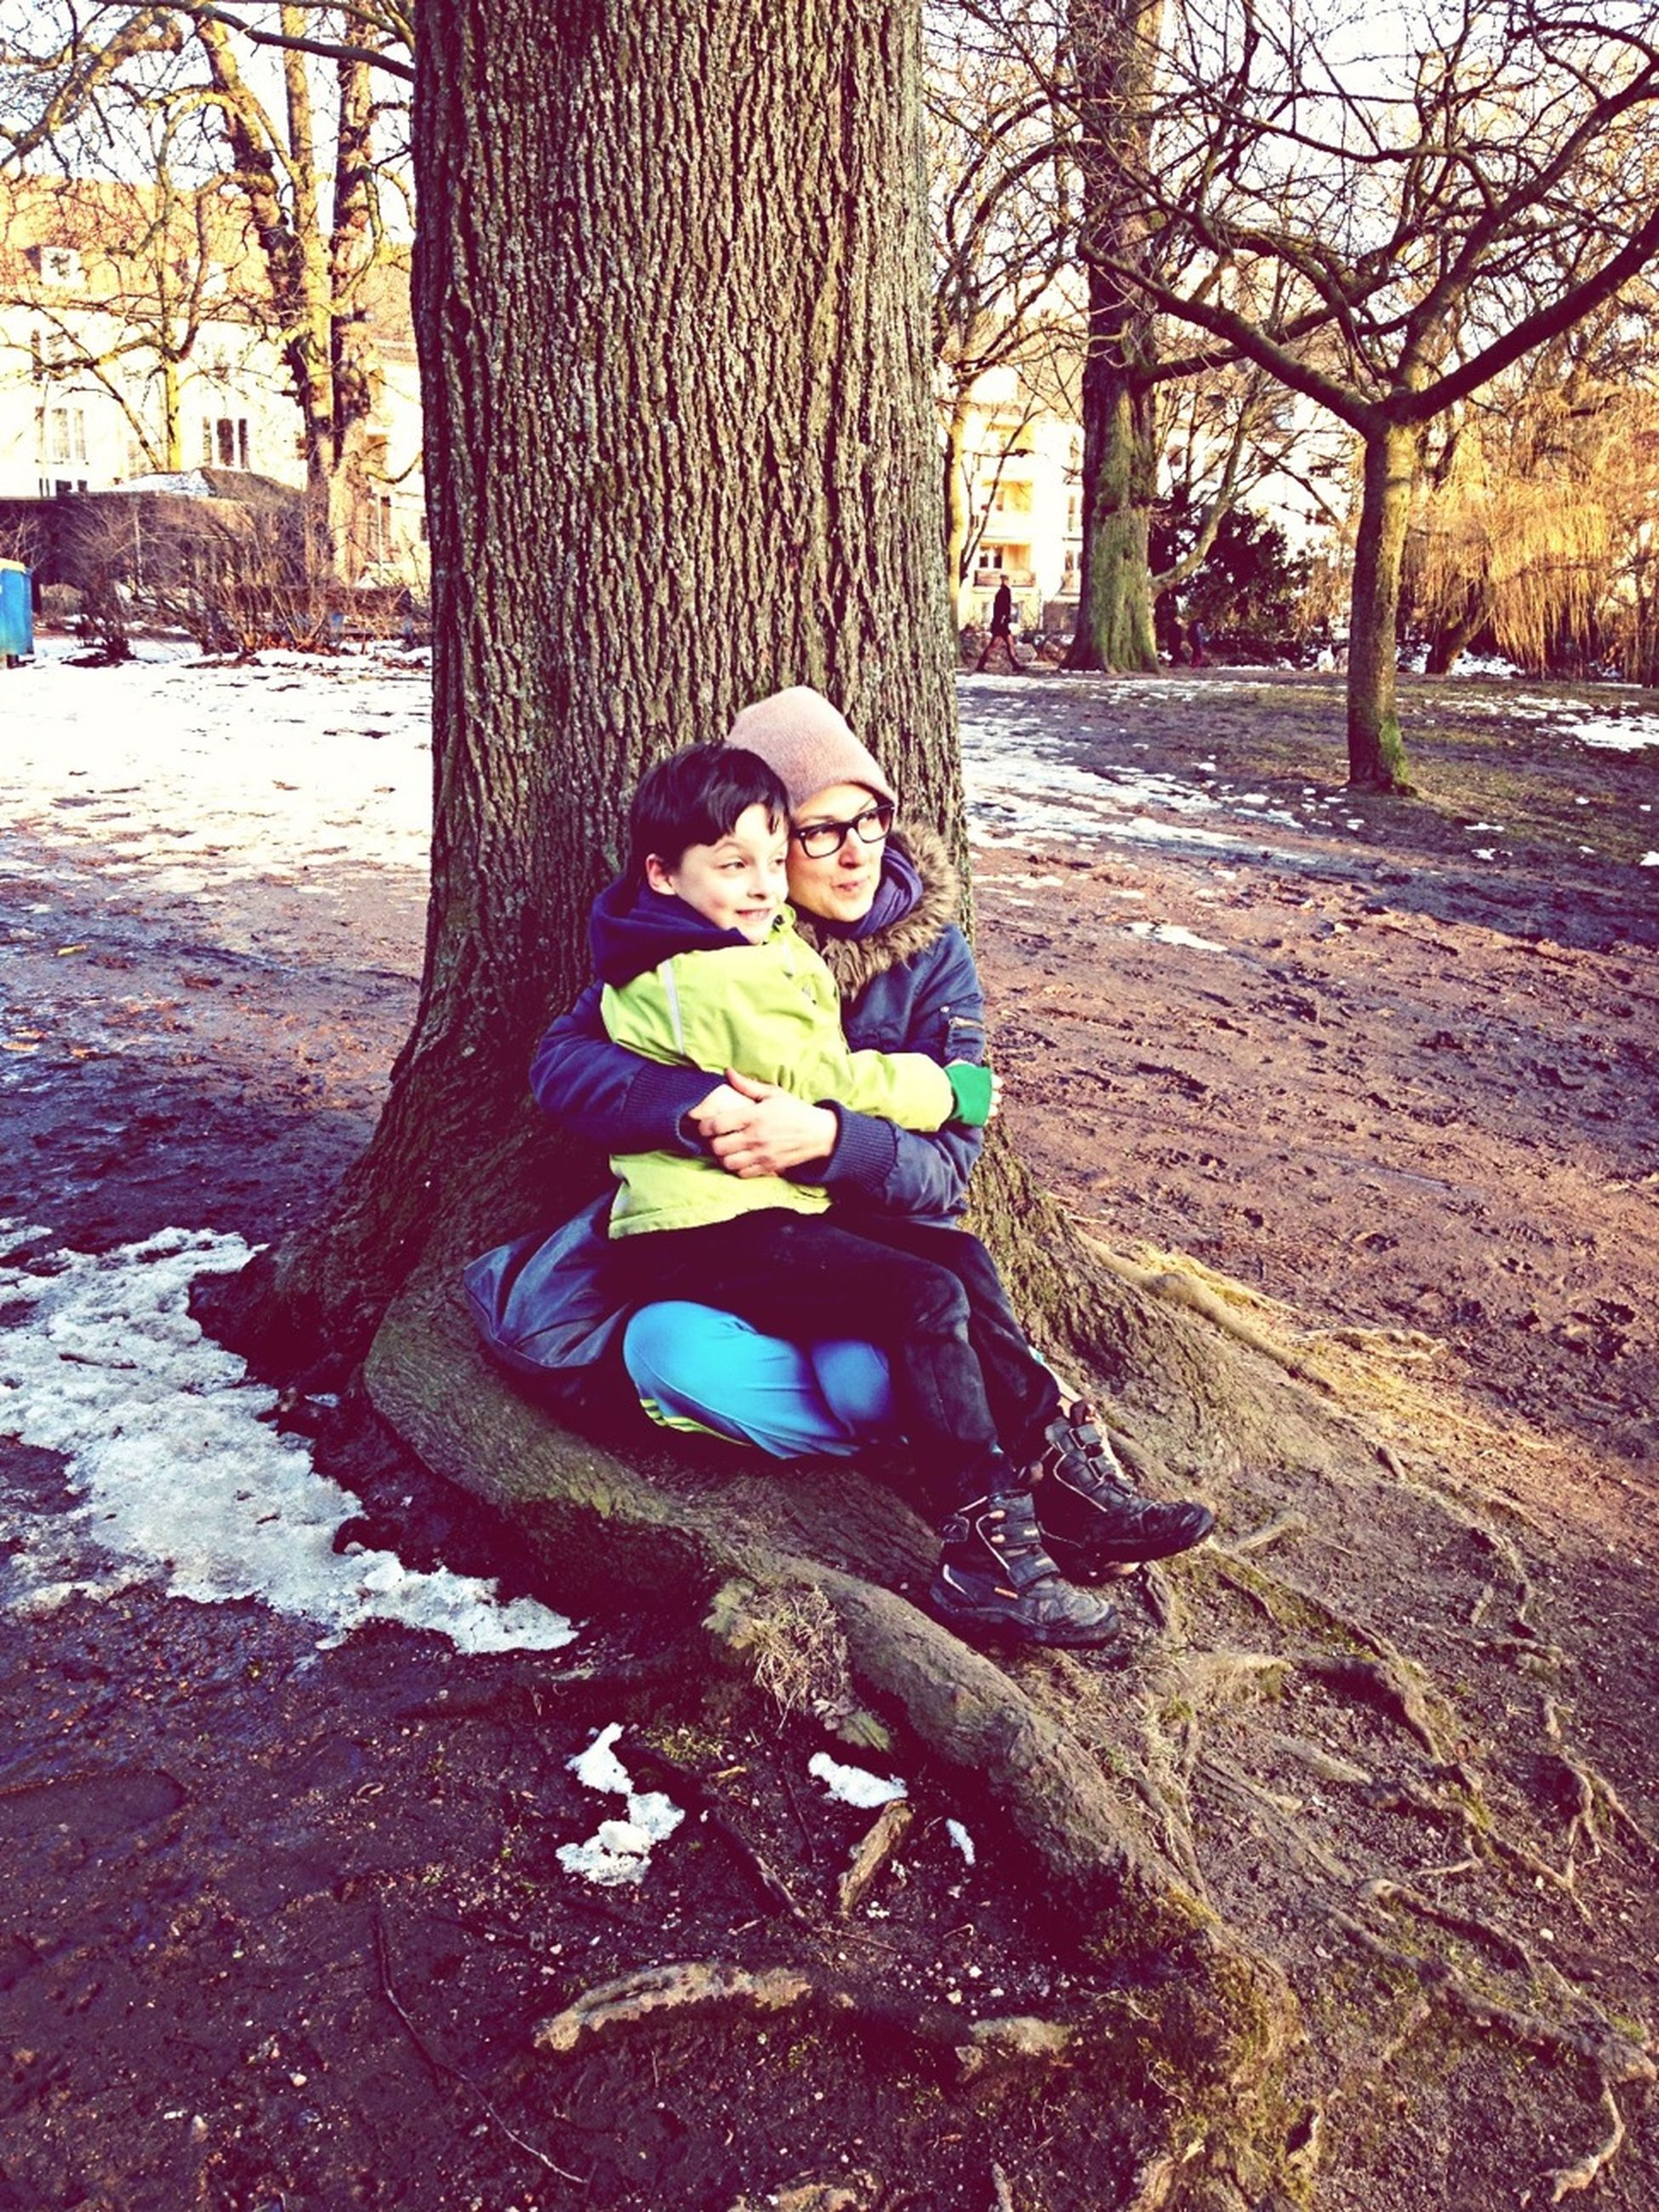 tree, childhood, park - man made space, tree trunk, creativity, elementary age, art and craft, lifestyles, art, leisure activity, full length, boys, day, park, person, outdoors, animal representation, human representation